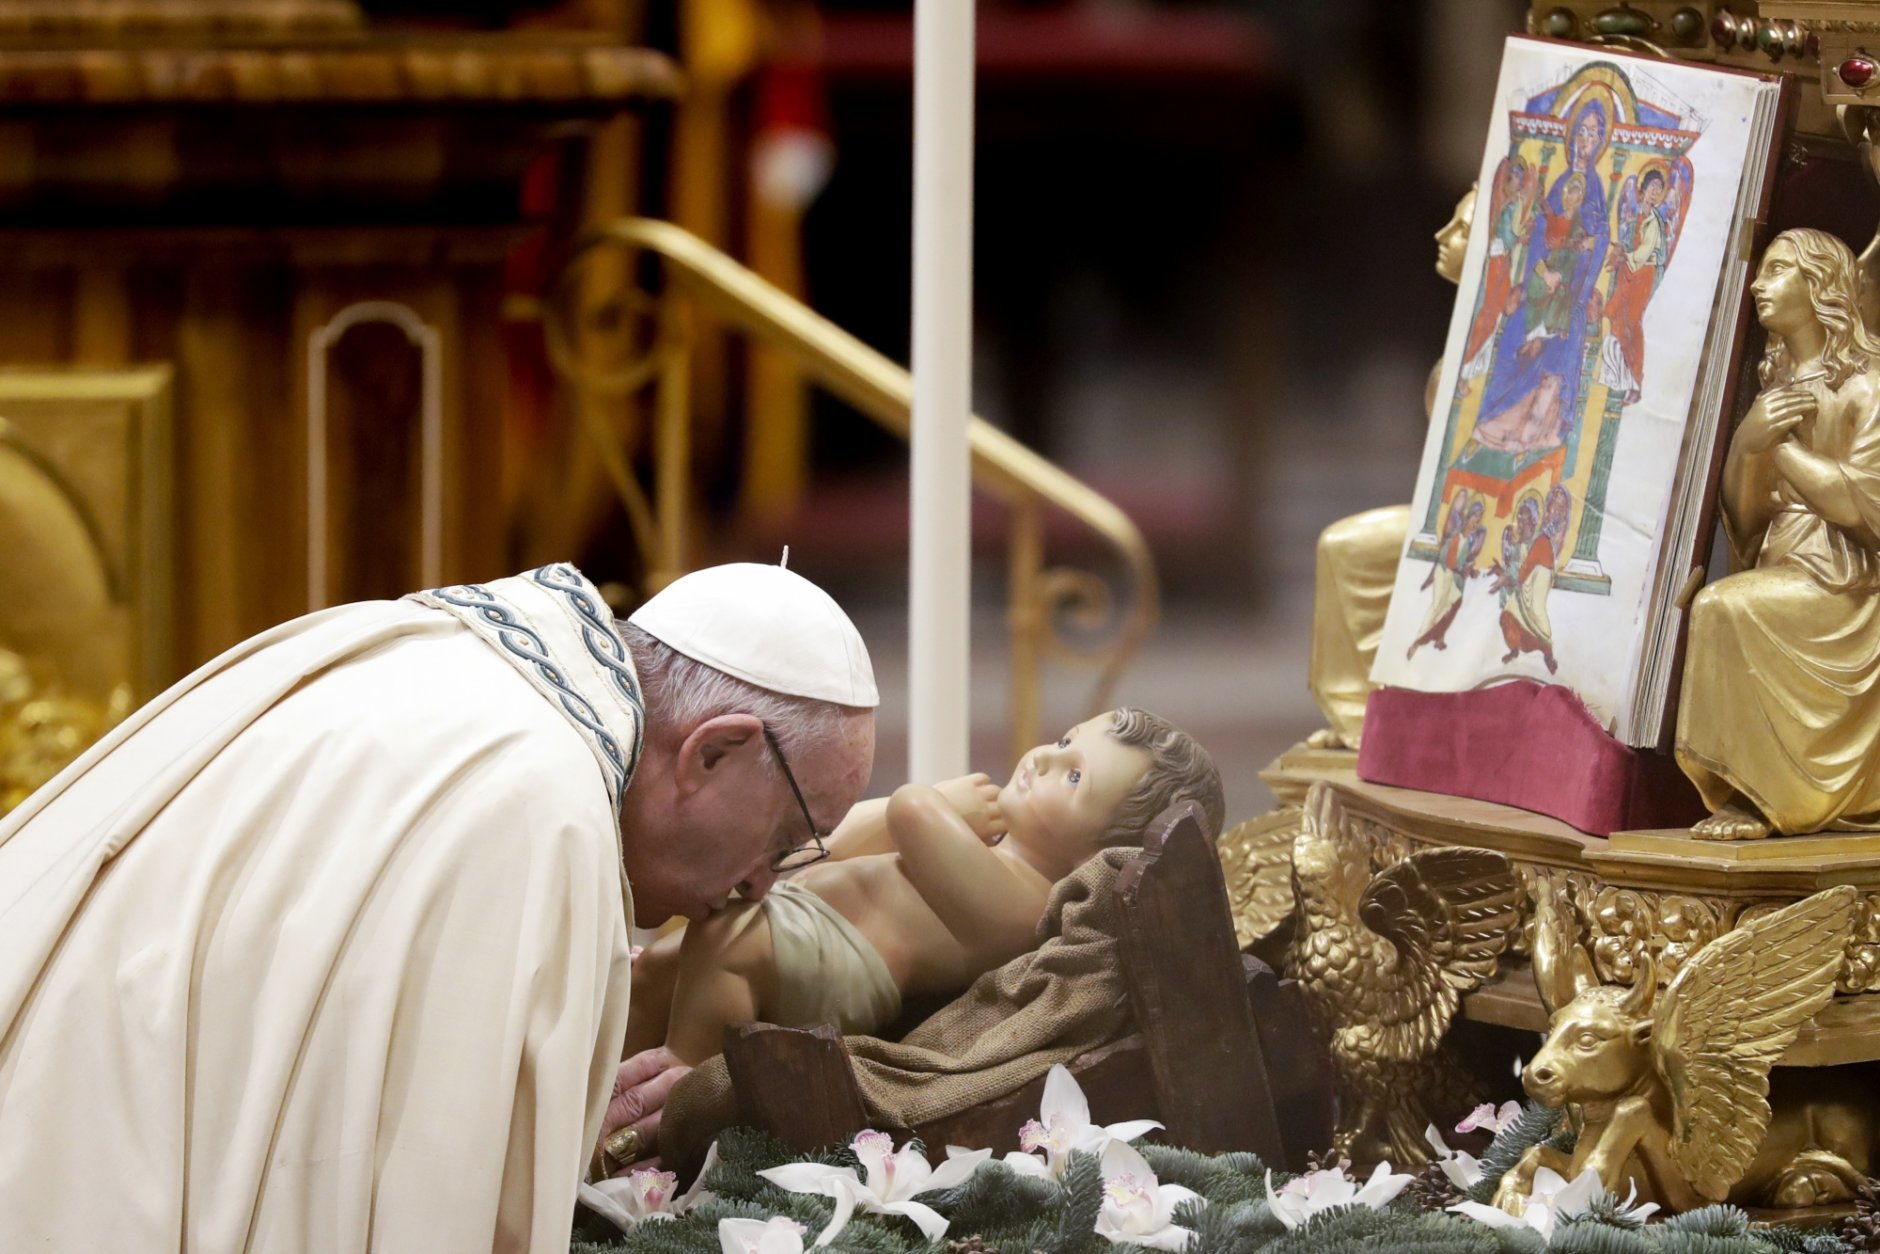 Pope Francis kisses a statue of Baby Jesus as he celebrates a new year's eve vespers Mass in St. Peter's Basilica at the Vatican, Monday, Dec. 31, 2018. (AP Photo/Andrew Medichini)